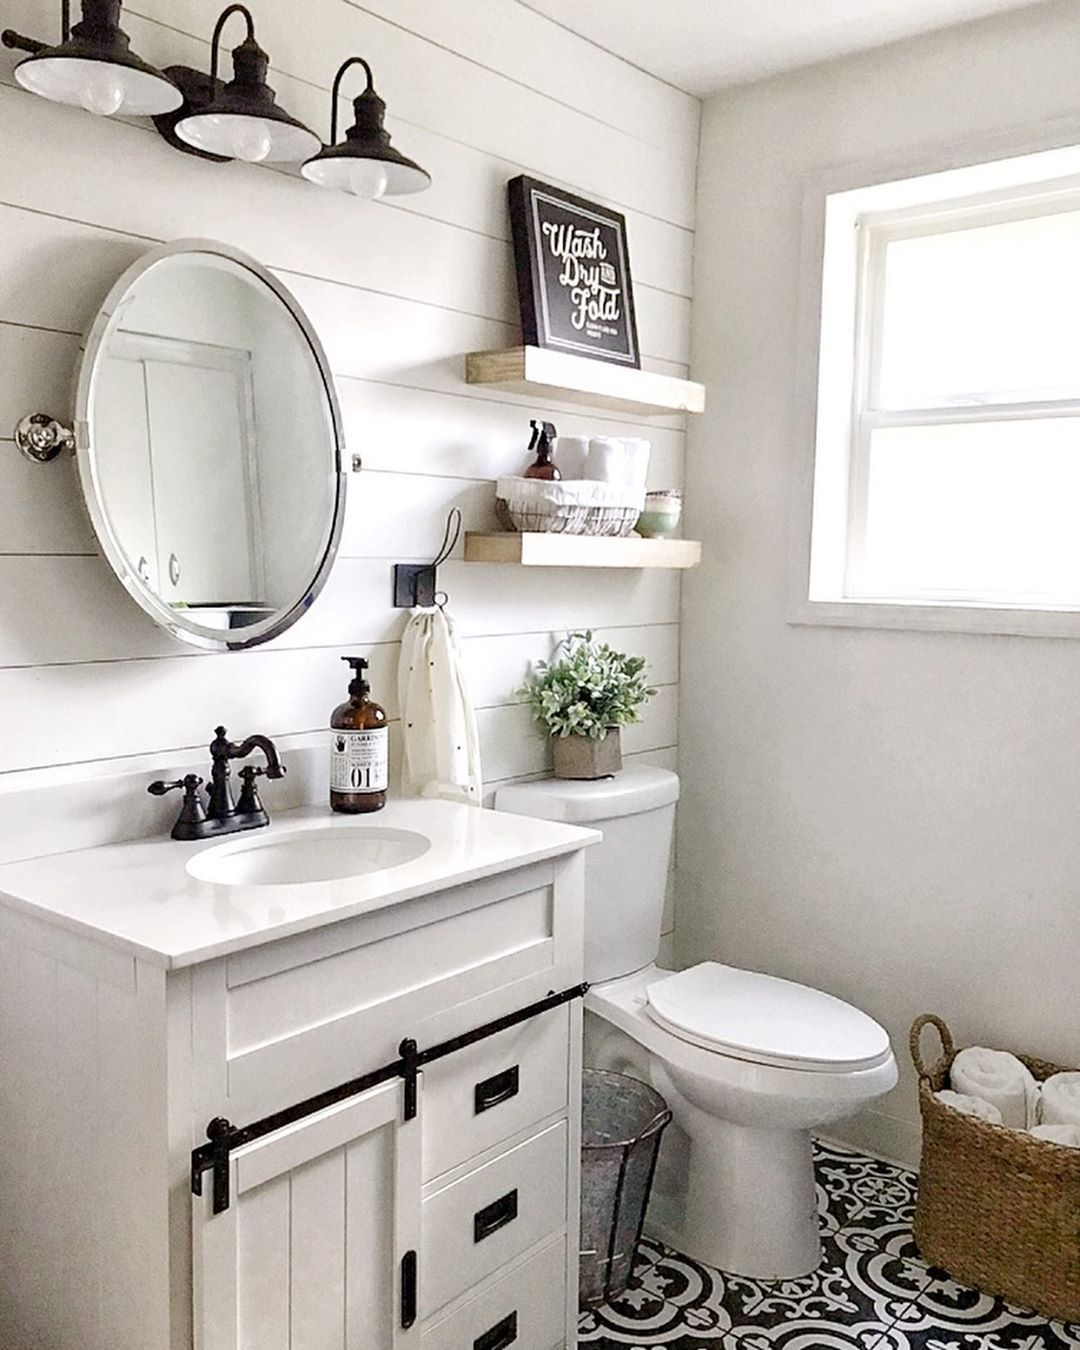 Thethankfulfarmhouse Boy Are We Thankful For Beautiful Bathrooms Like This One Just Small Bathroom Makeover Bathrooms Remodel Small Bathroom Remodel